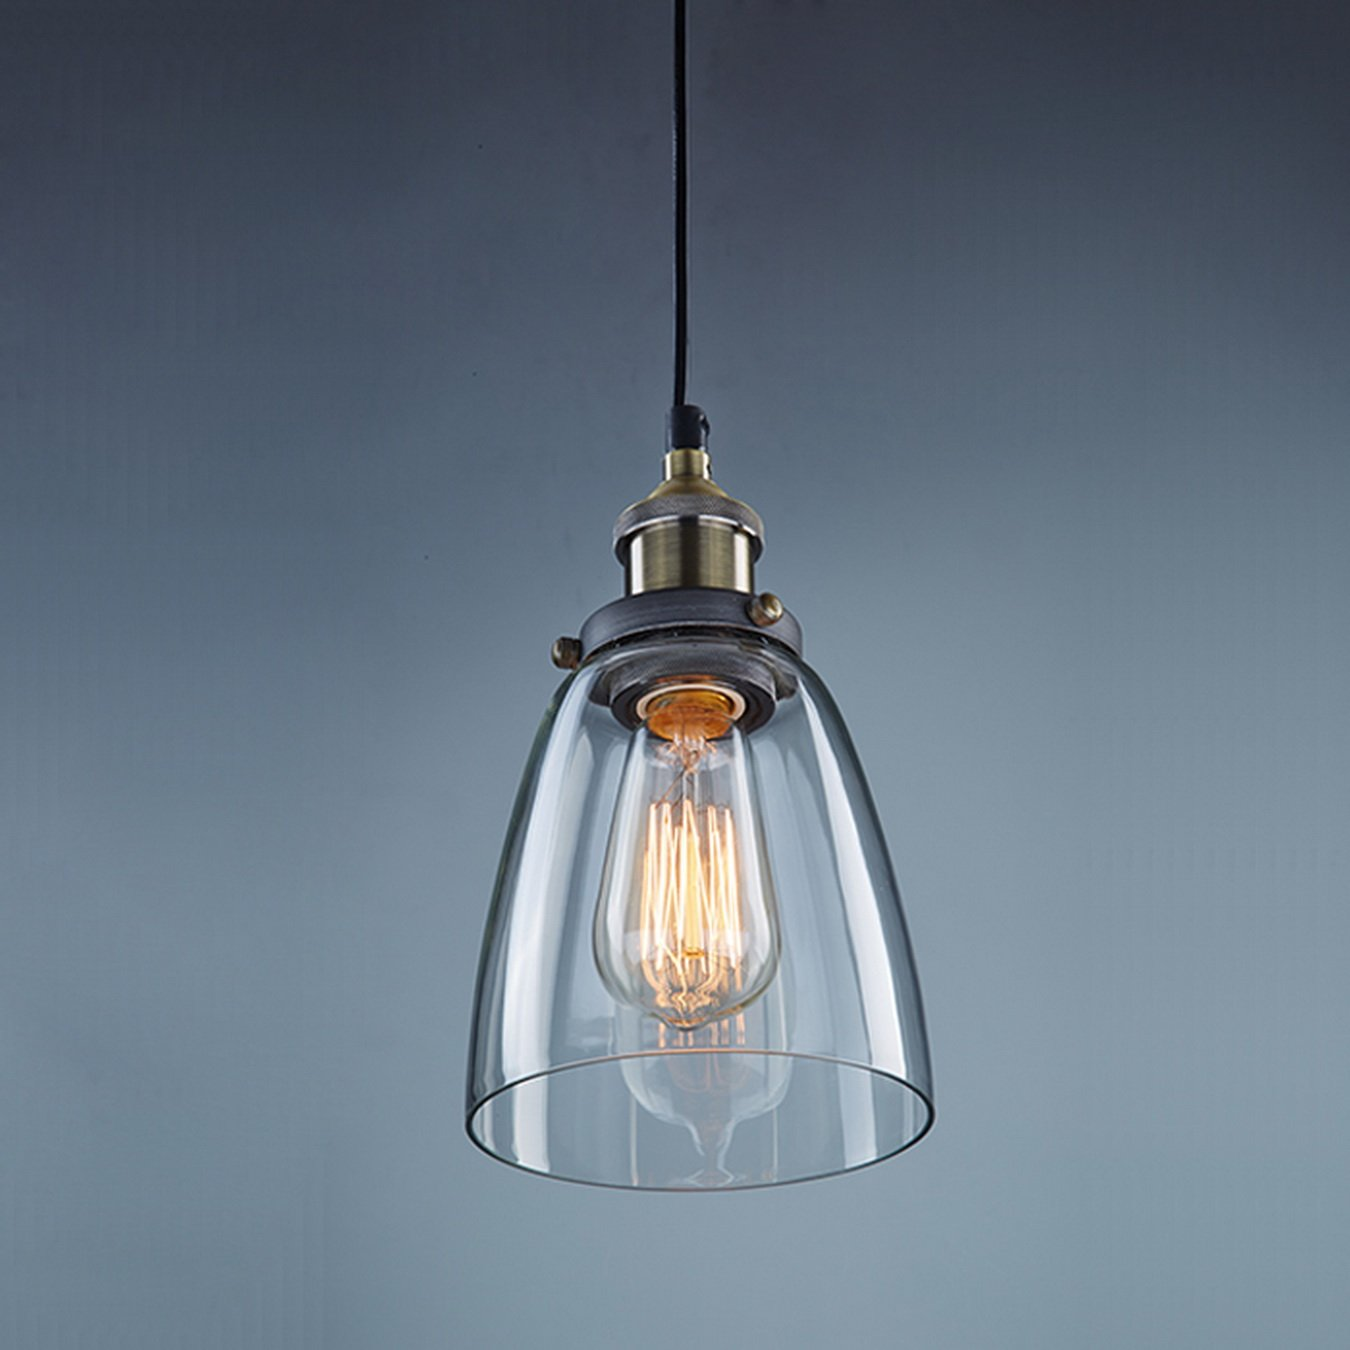 Claxy vintage industrial ceiling glass pendant light amazon claxy vintage industrial ceiling glass pendant light amazon lighting aloadofball Gallery